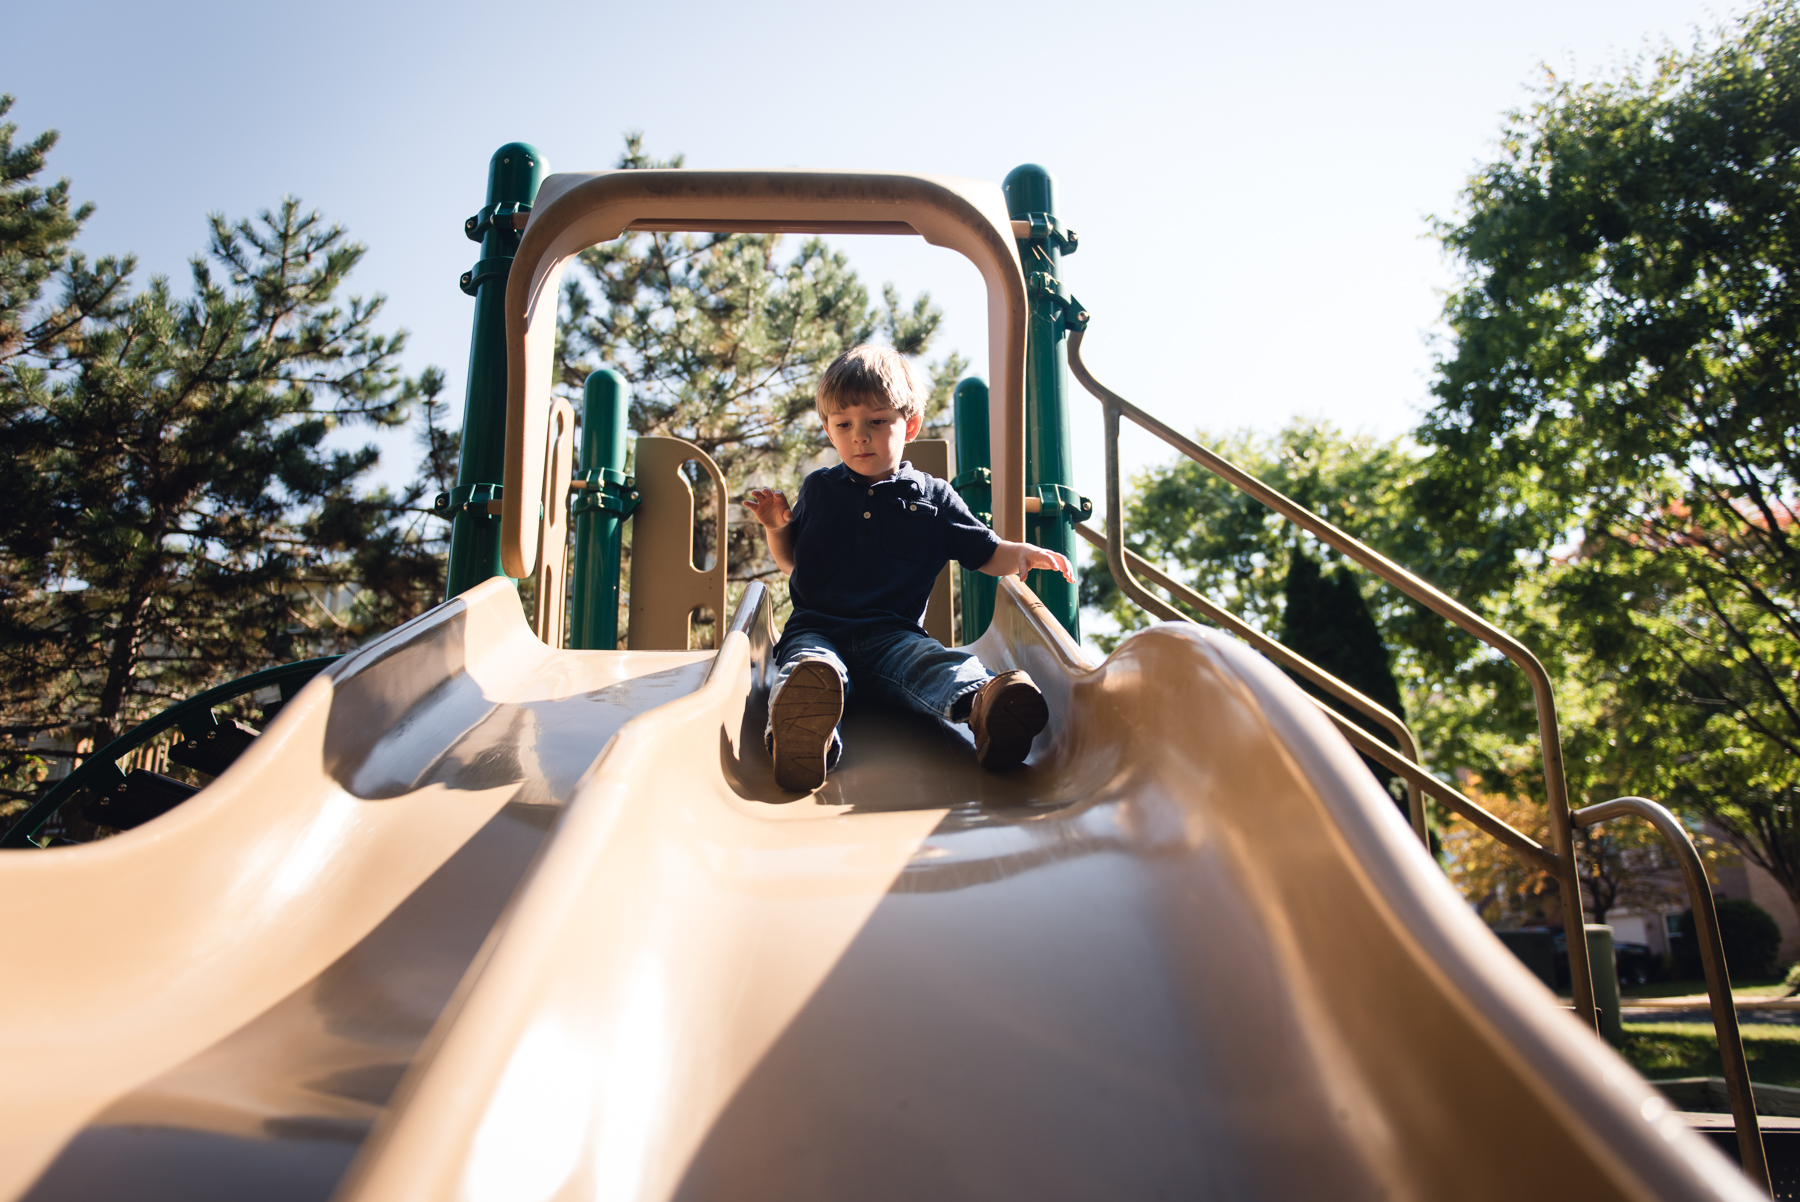 photo of child on slide in full sun by megan cieloha